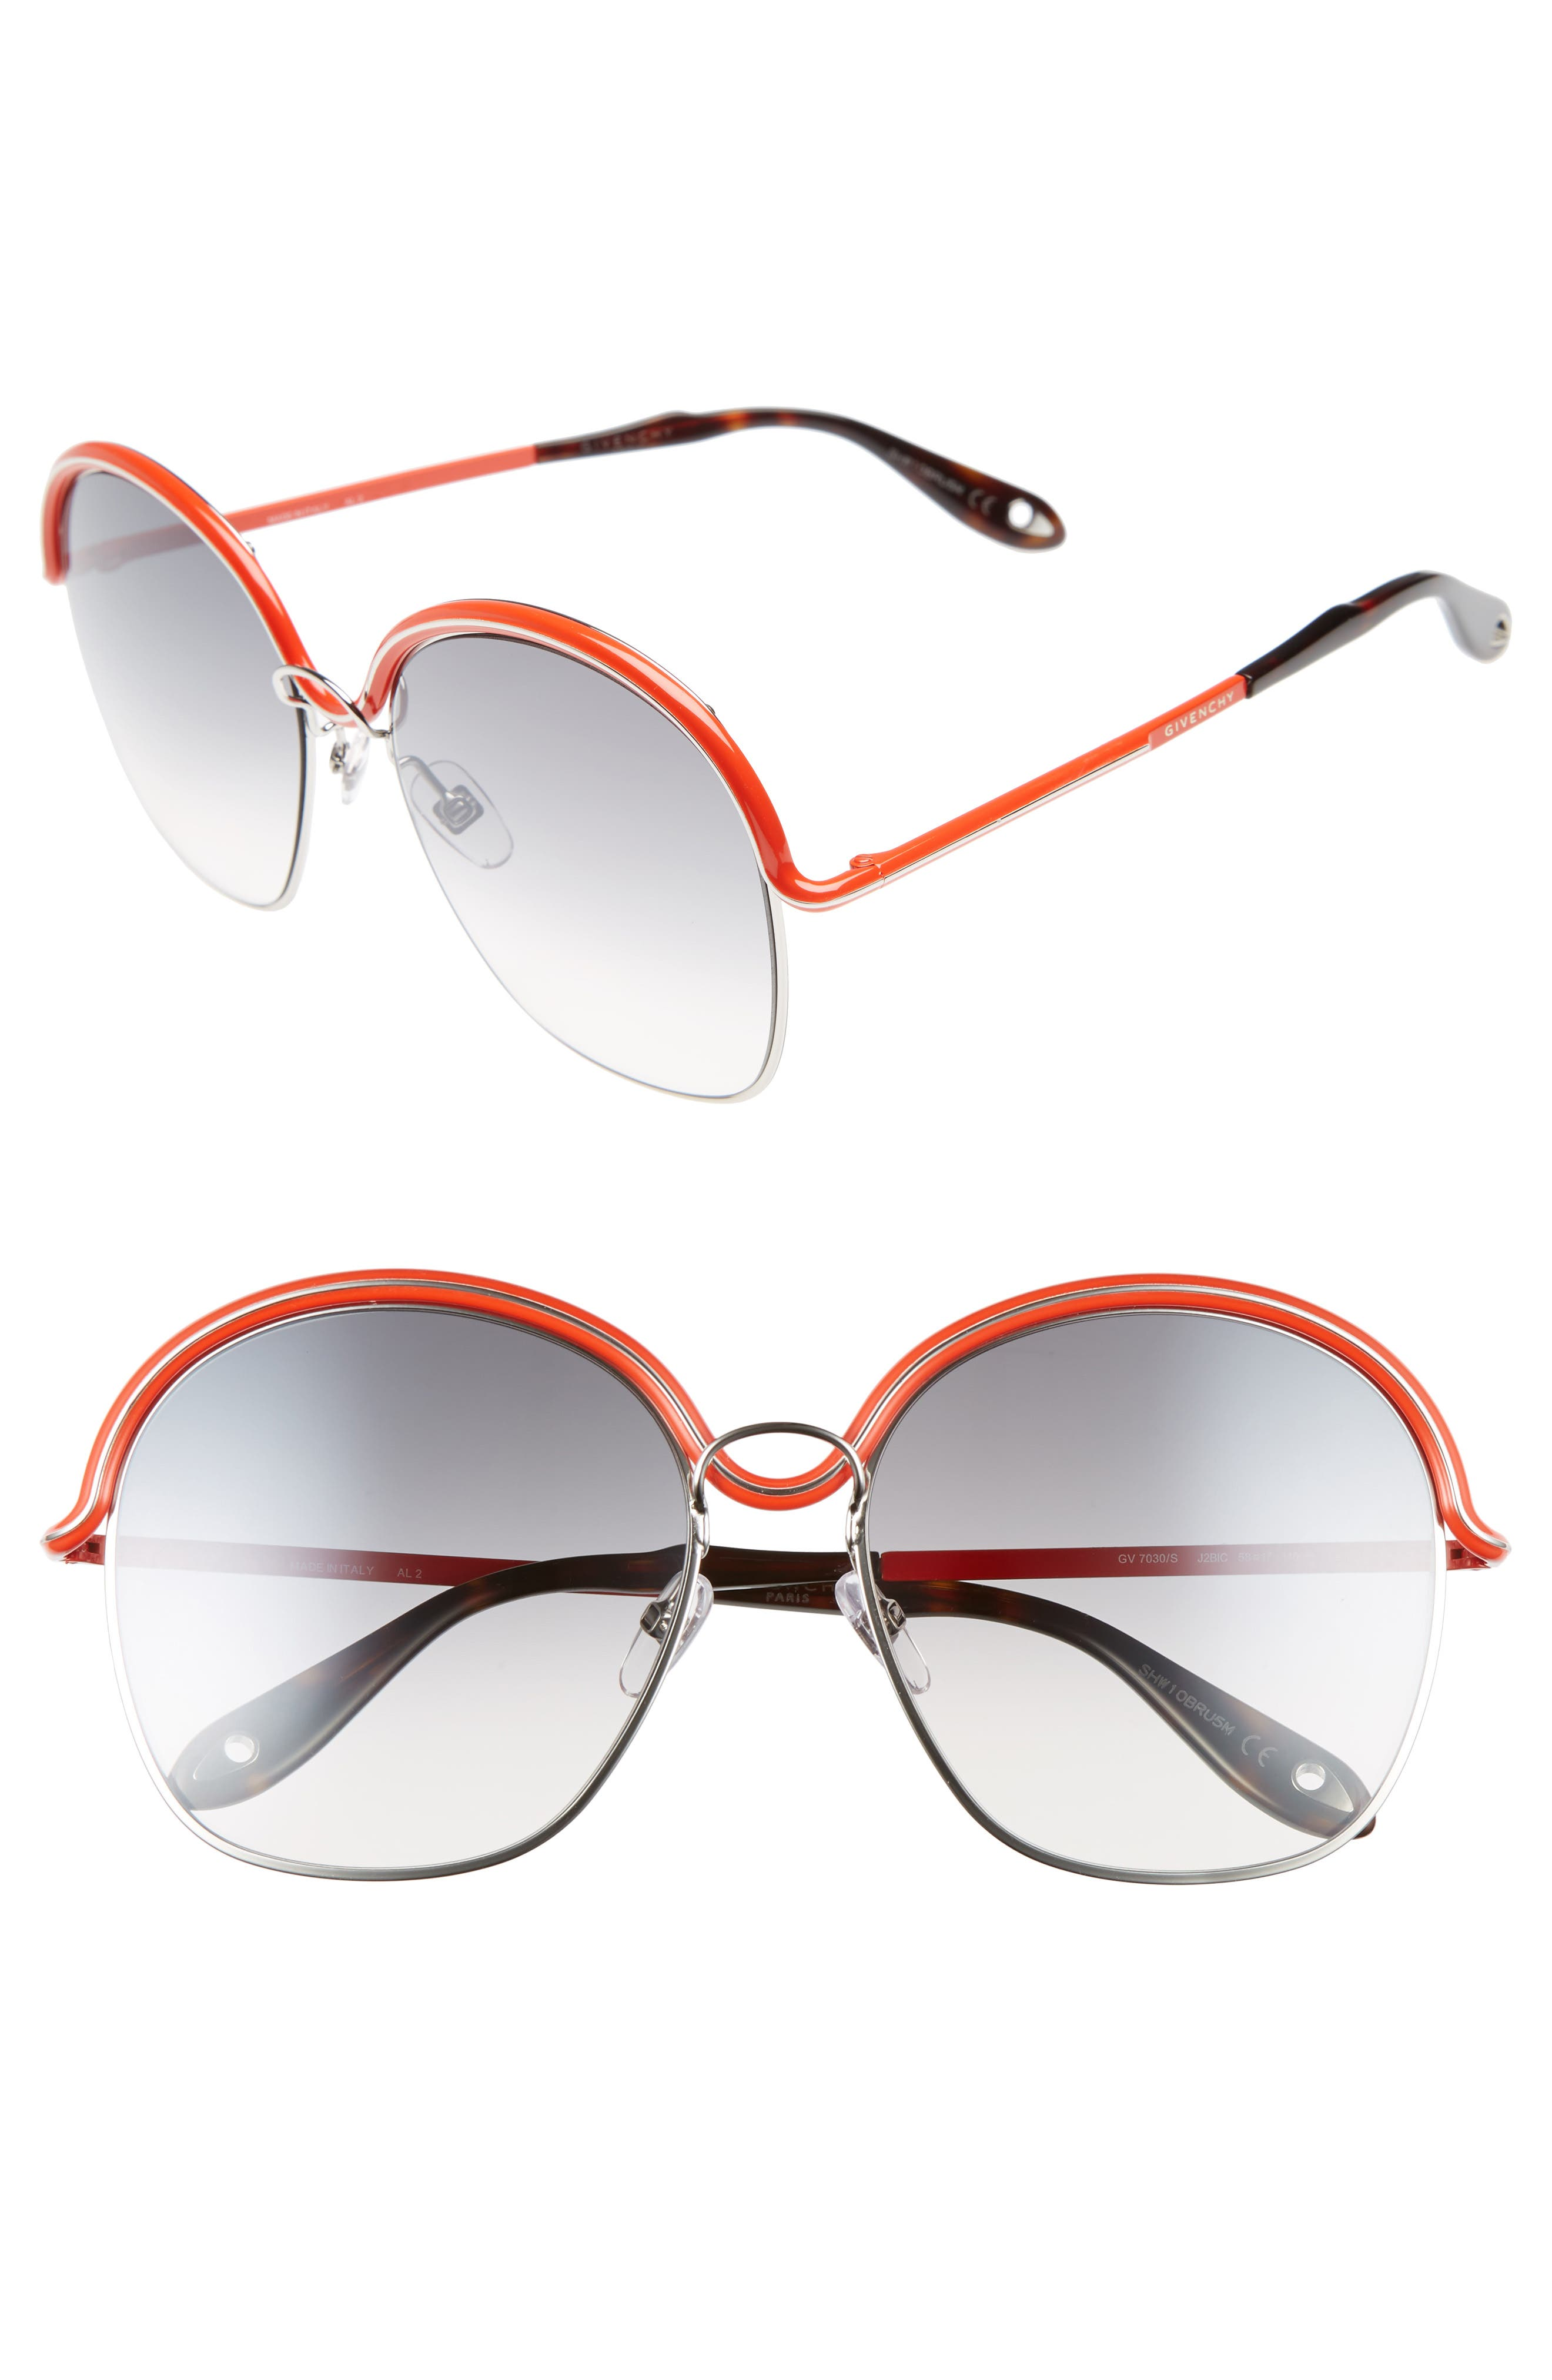 7030/S 58mm Oversized Sunglasses,                         Main,                         color, 040